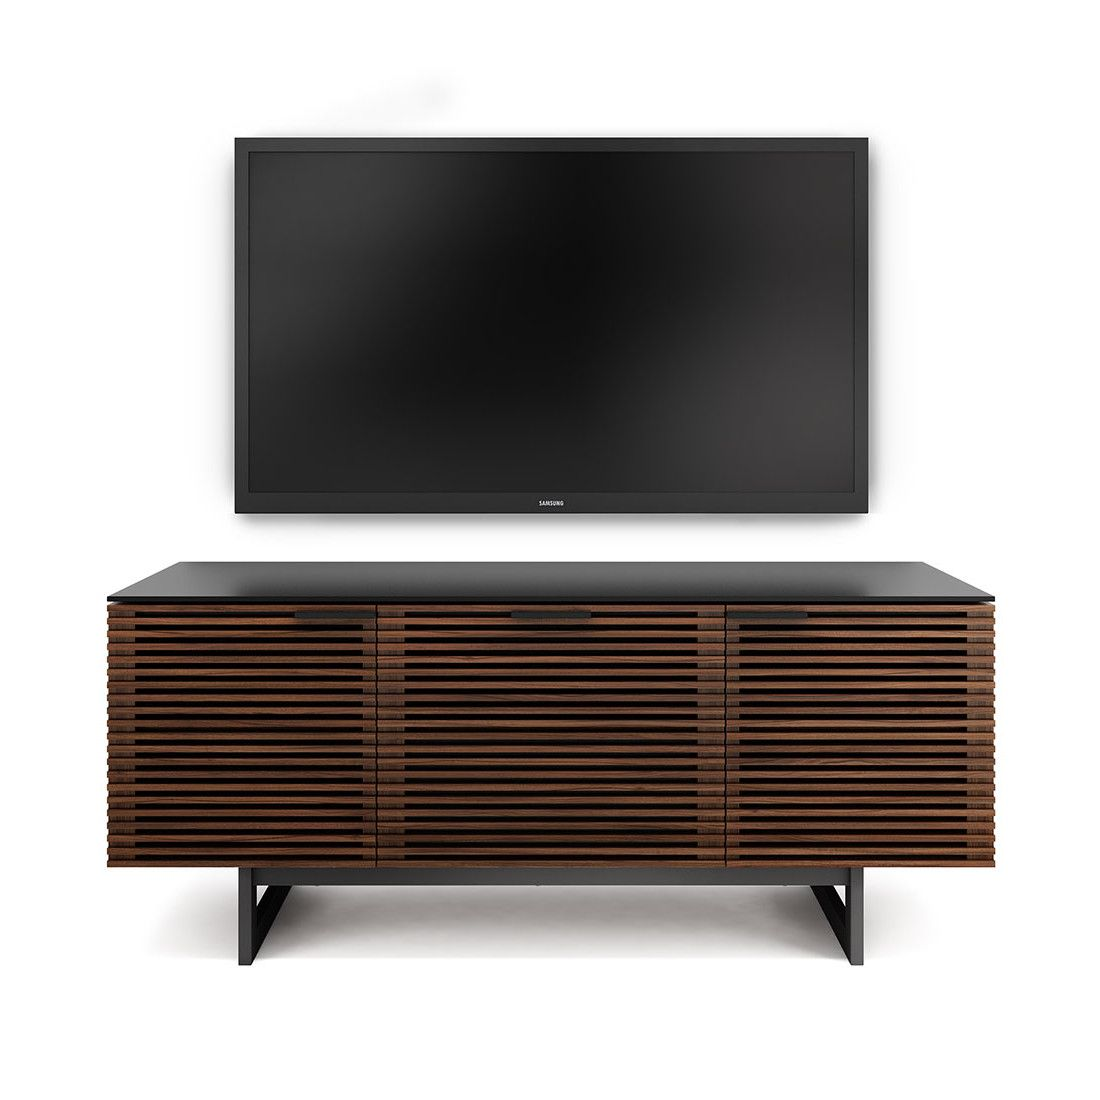 Corridor Triple-Width TV Stand with Drawer